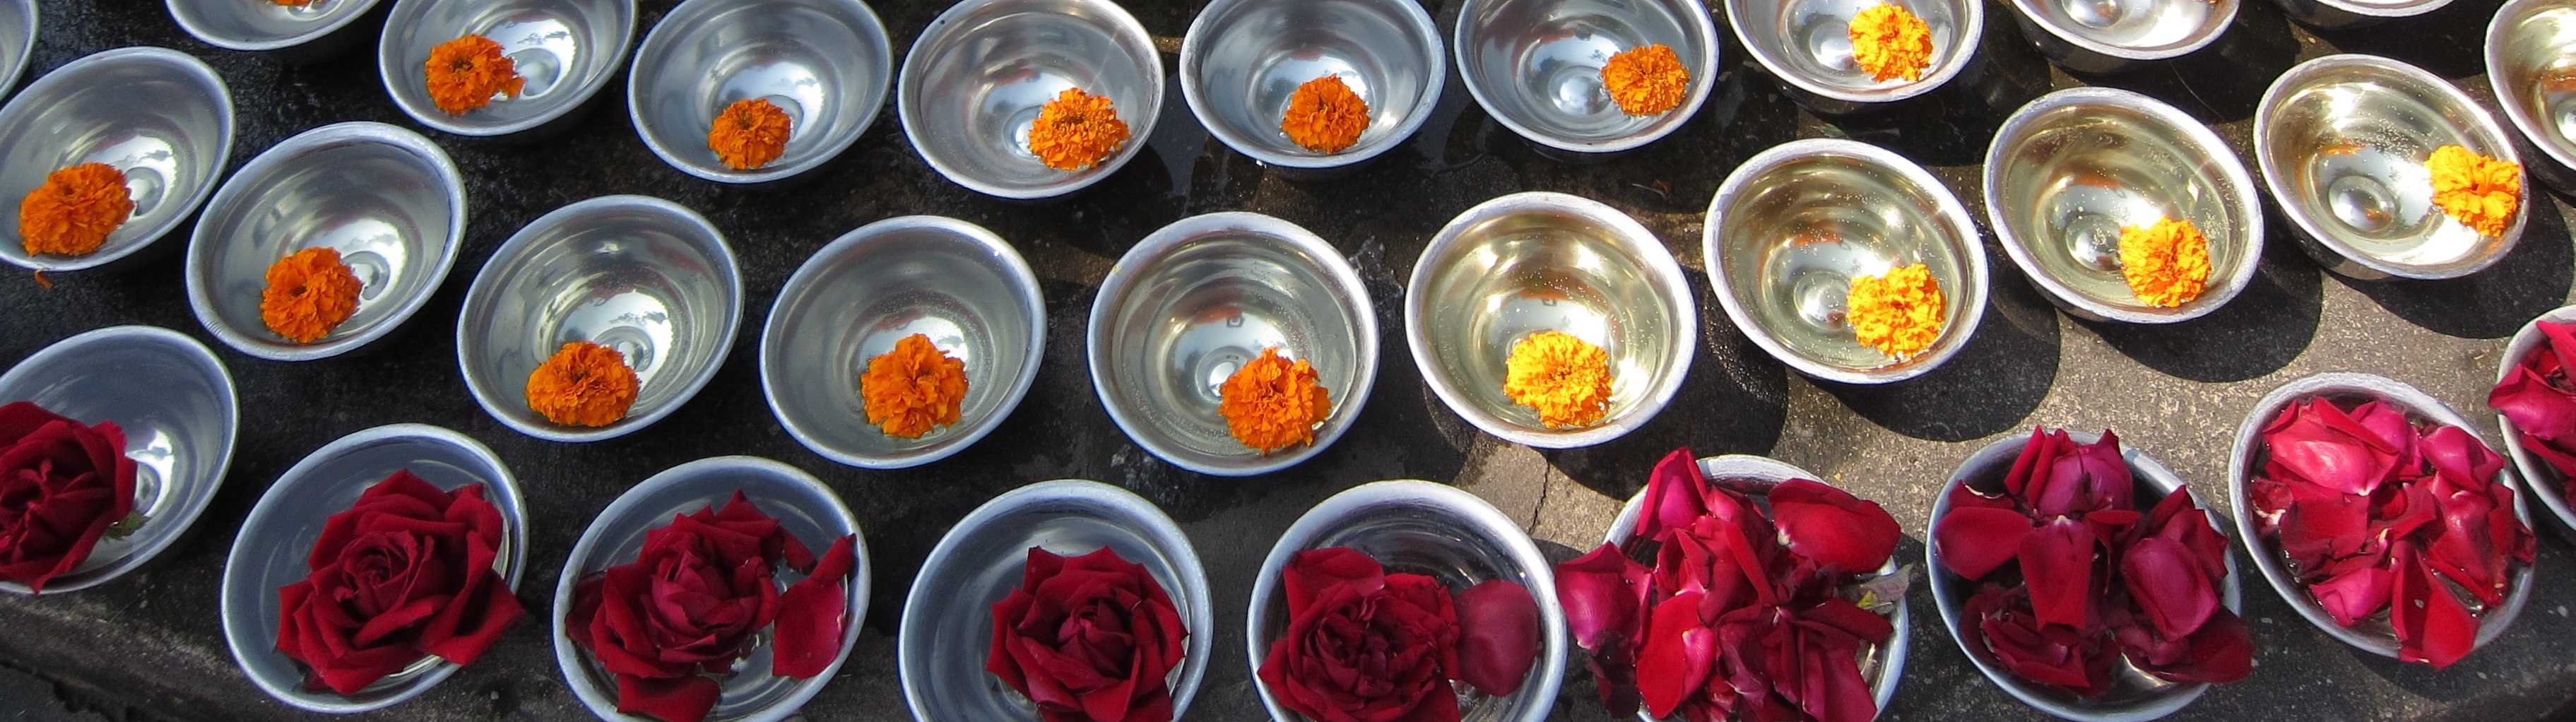 Flowers. Mahabodhi Temple, Bodhgaya, Bihar Chapter 1: The Ancestors